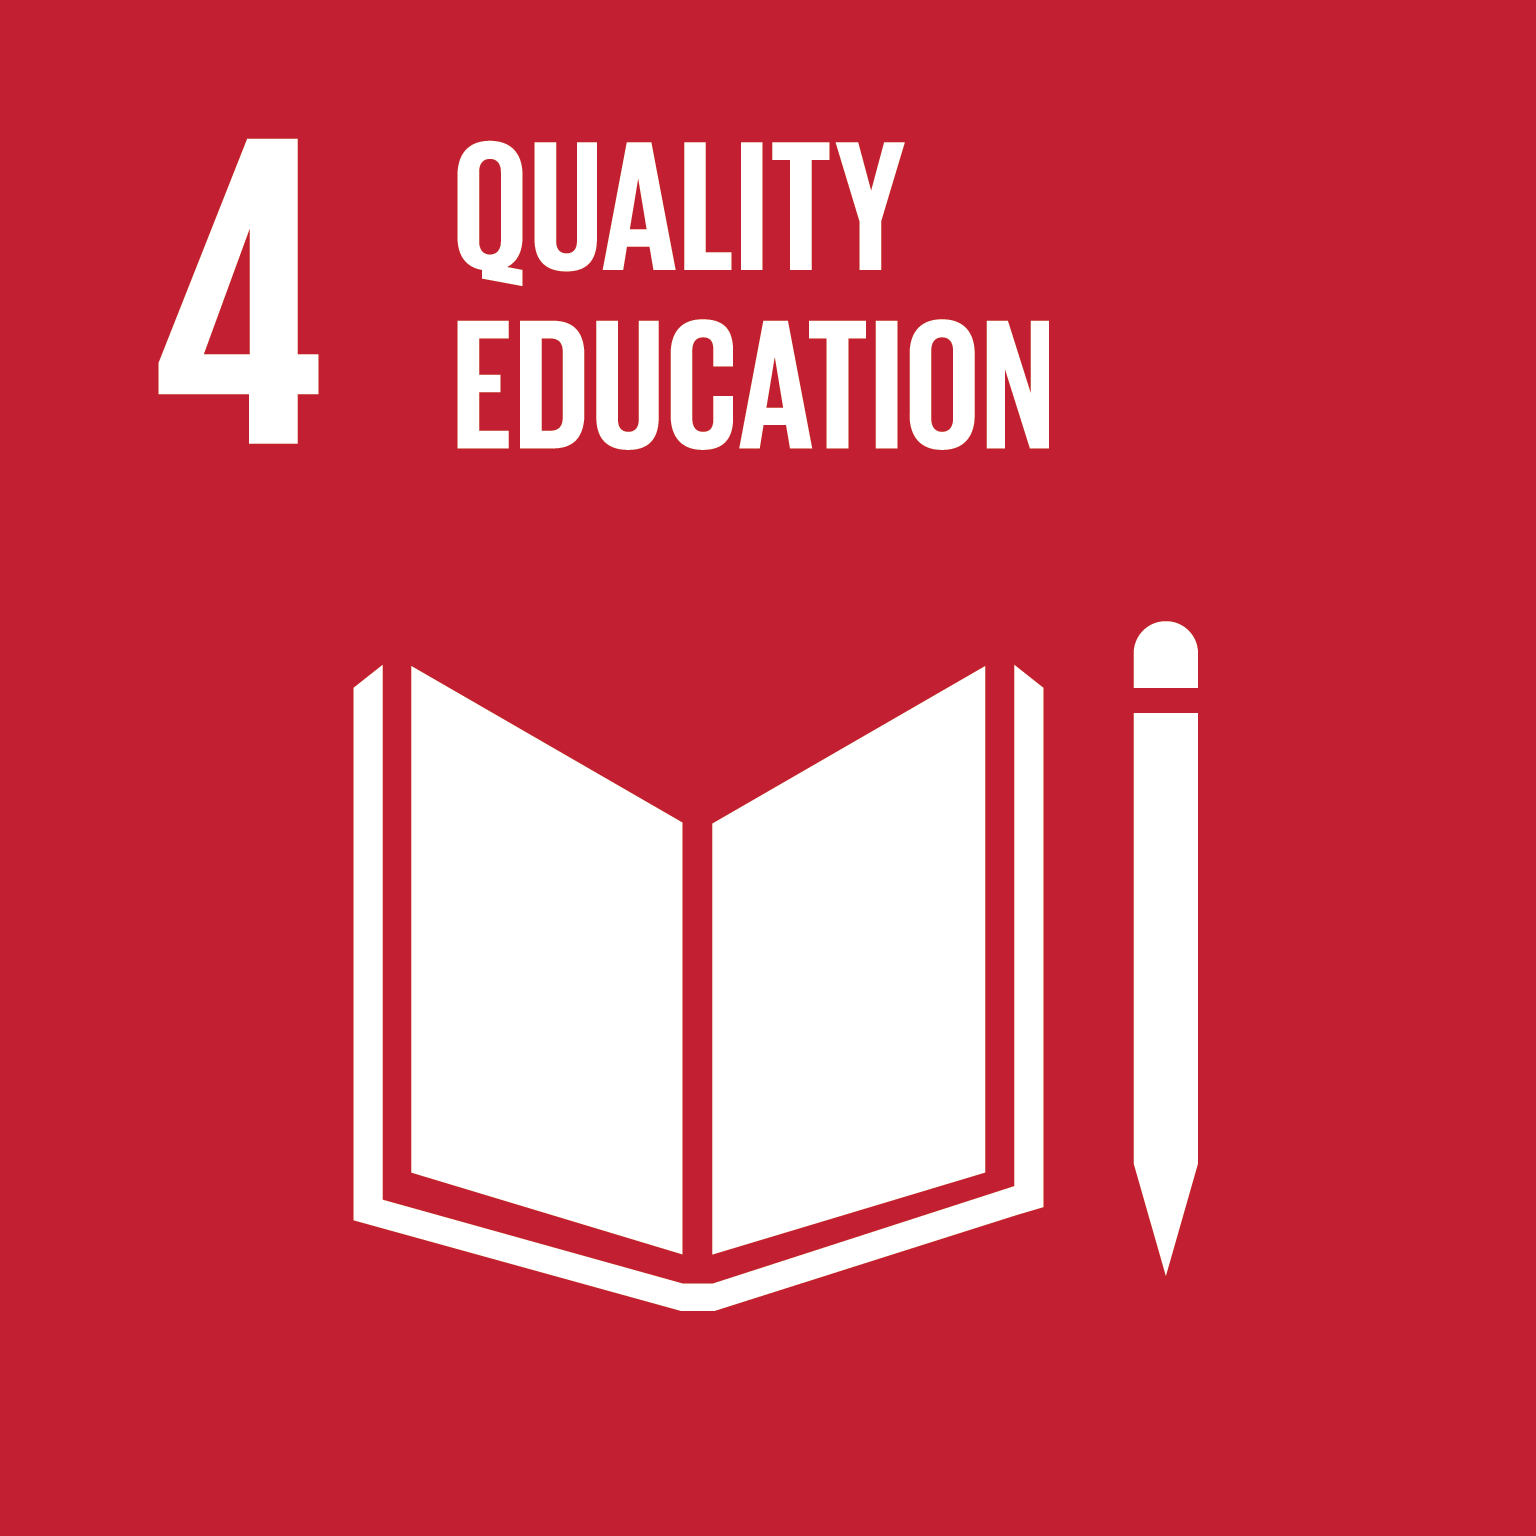 Quality Education - Ensure inclusive and quality education for all and promote lifelong learning